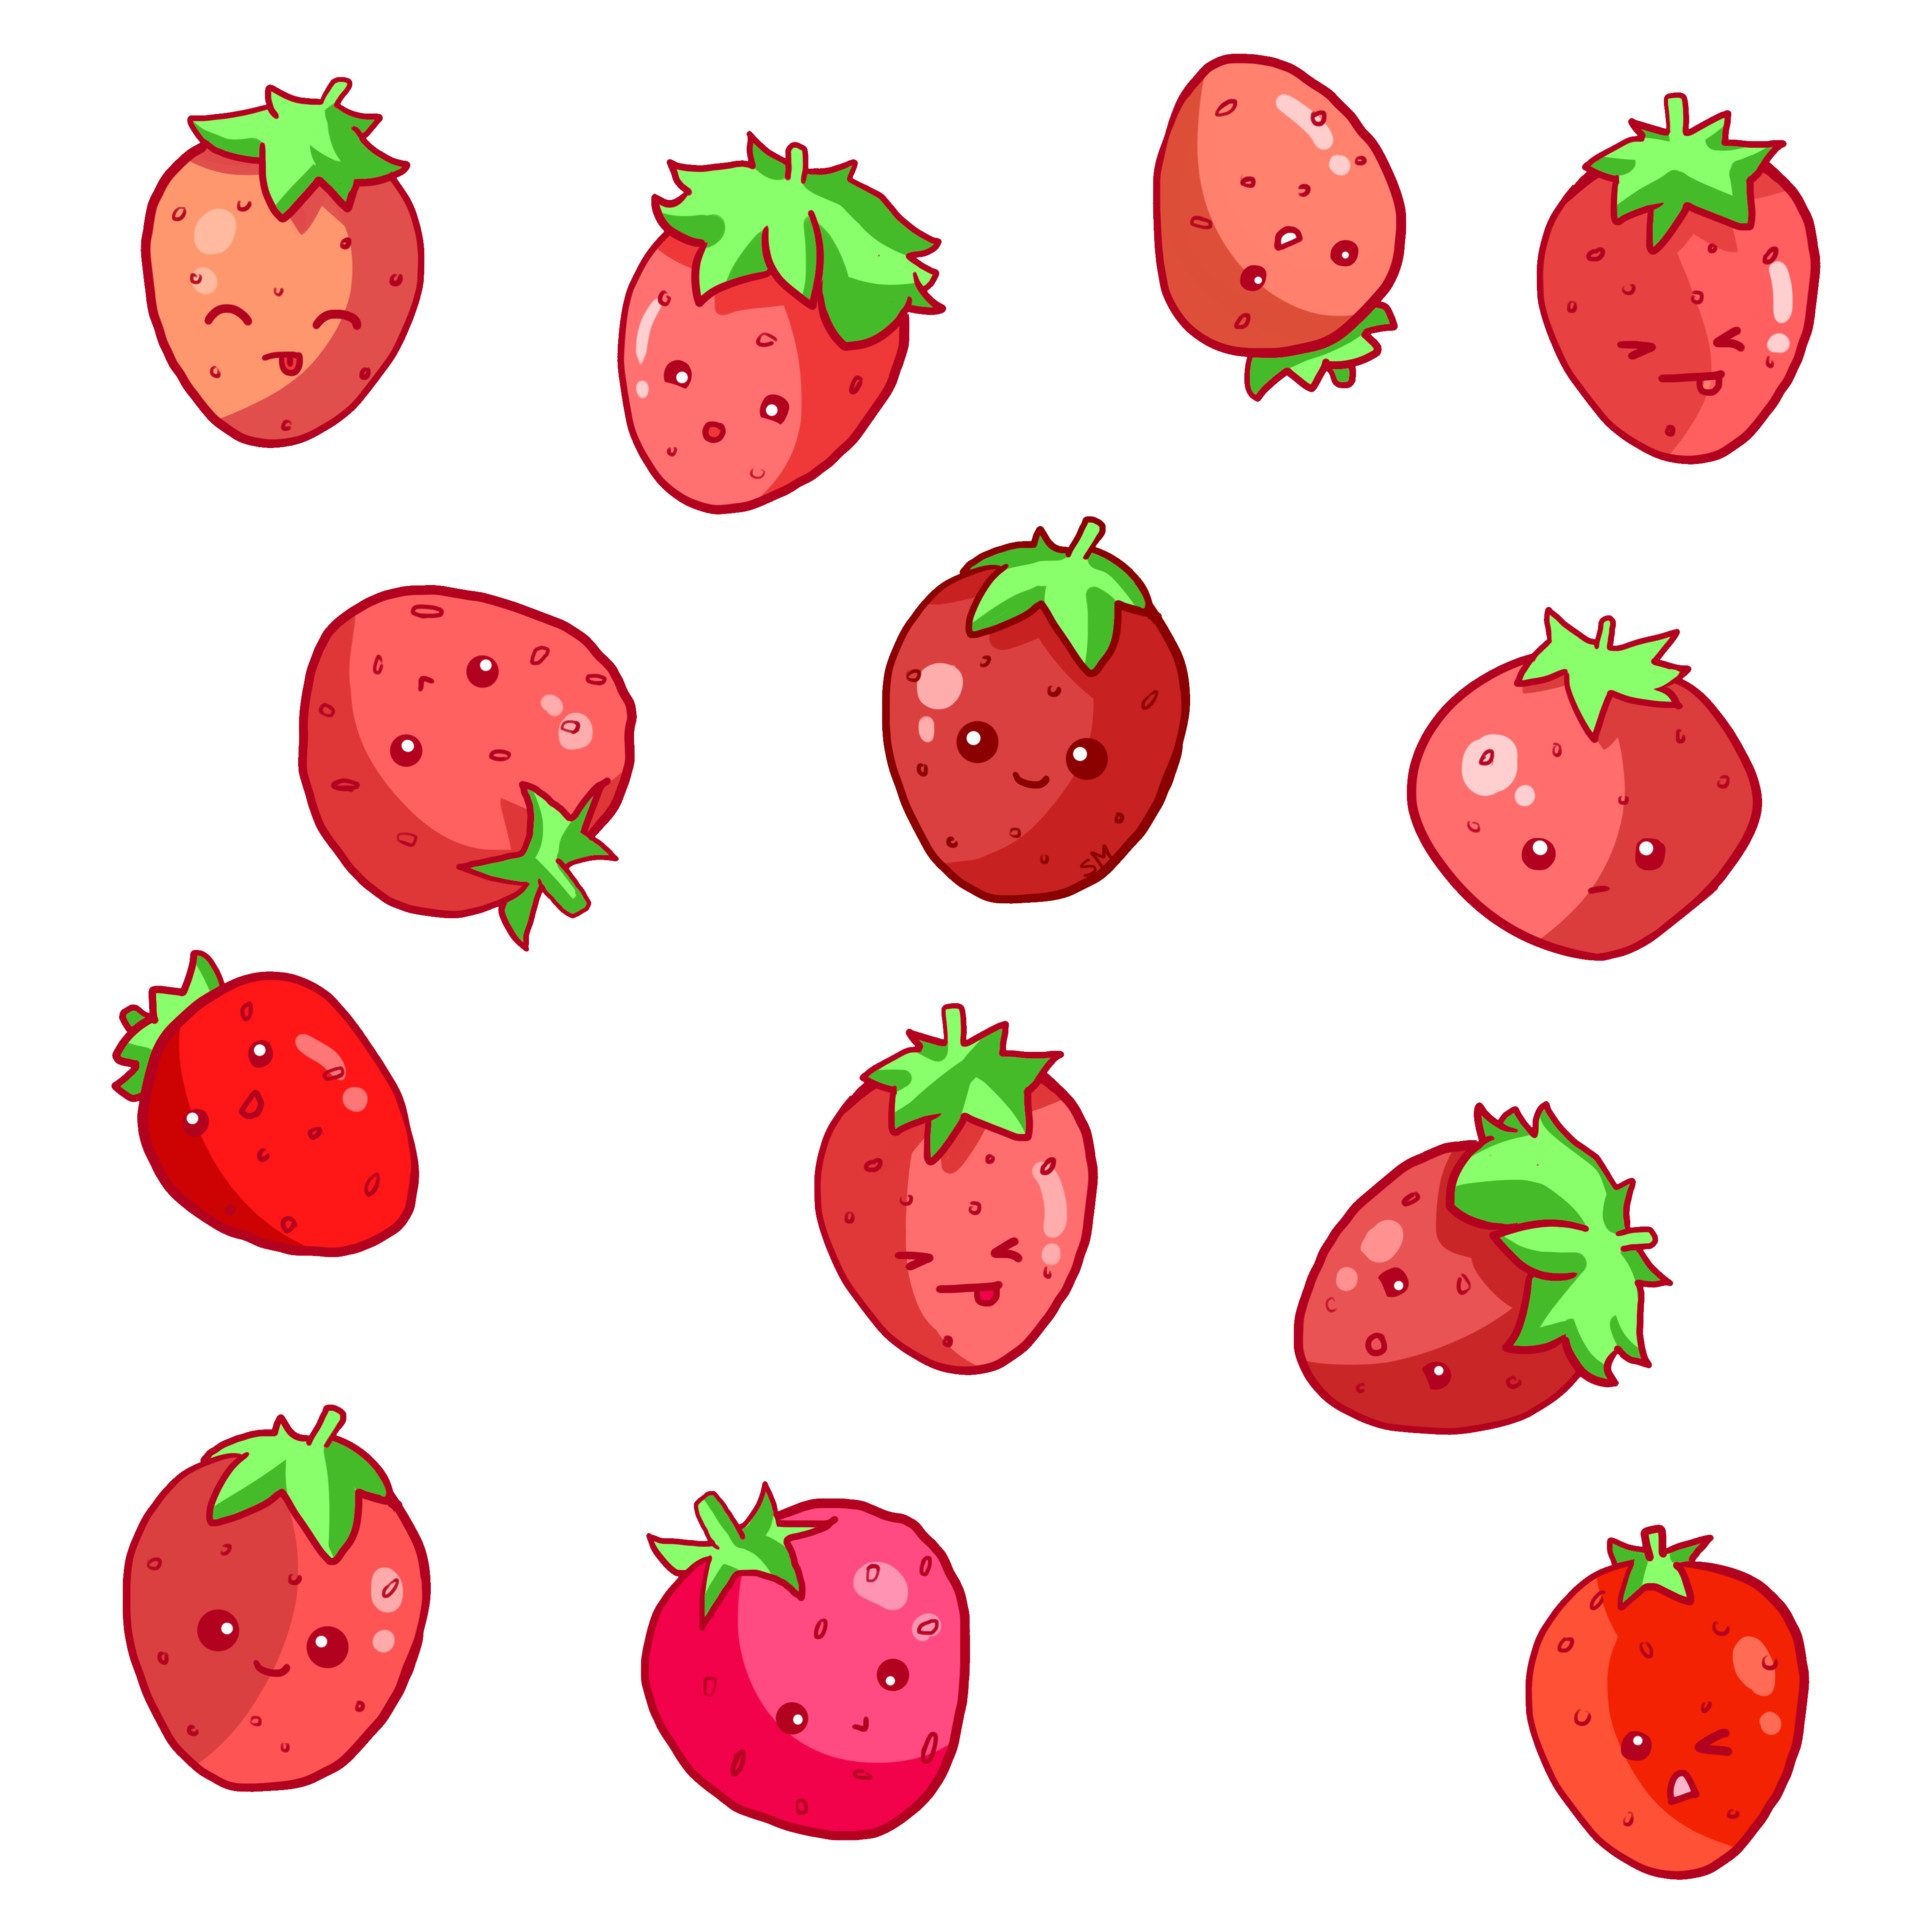 Shellz art pattern strawberry